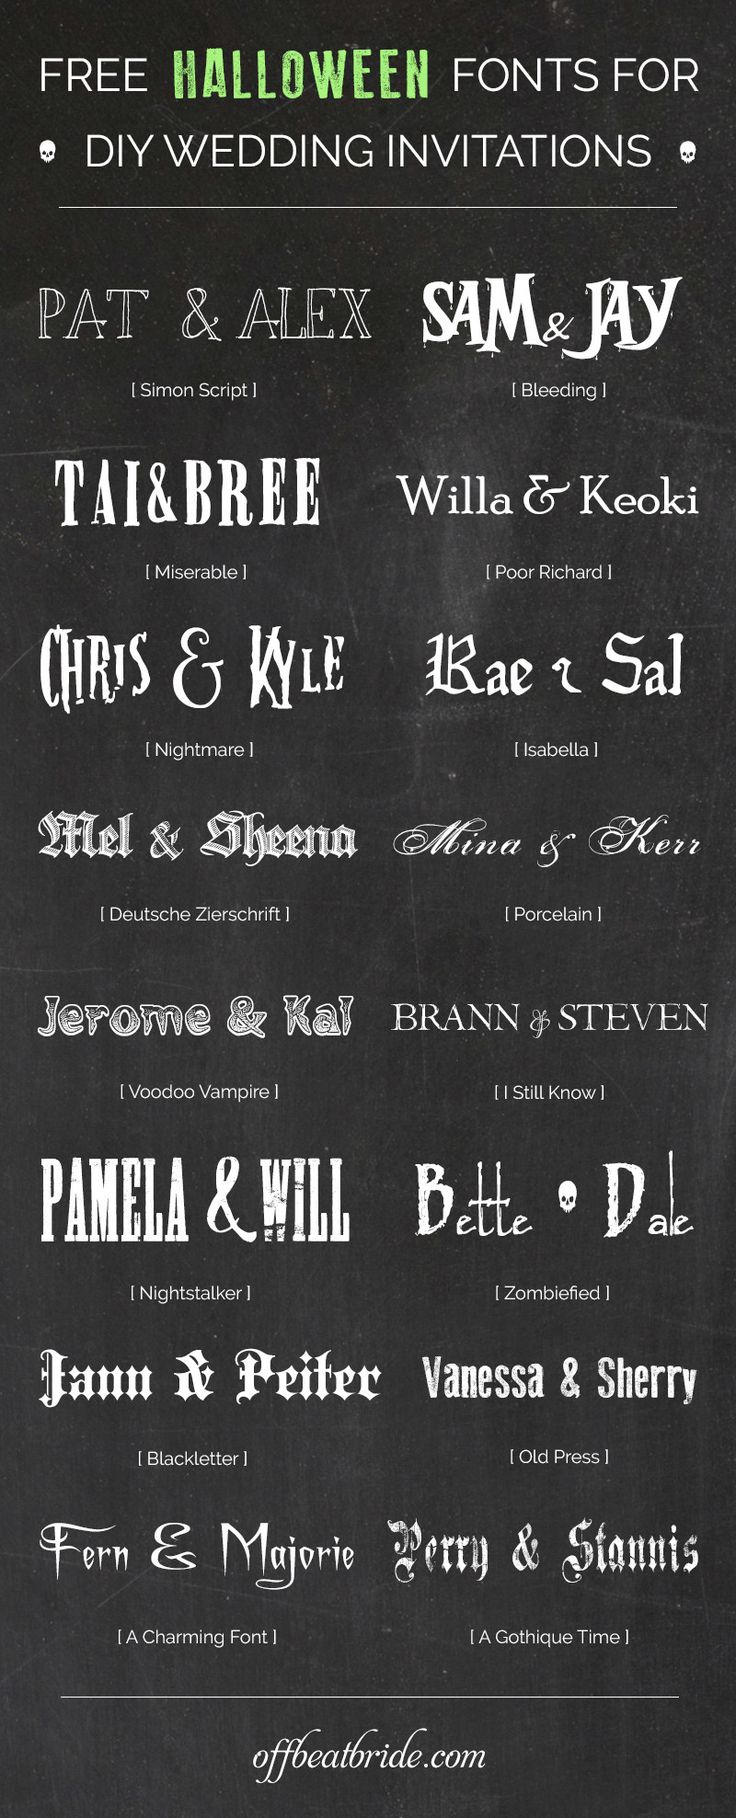 Best 25+ Wedding invitation fonts ideas on Pinterest | Wedding ...